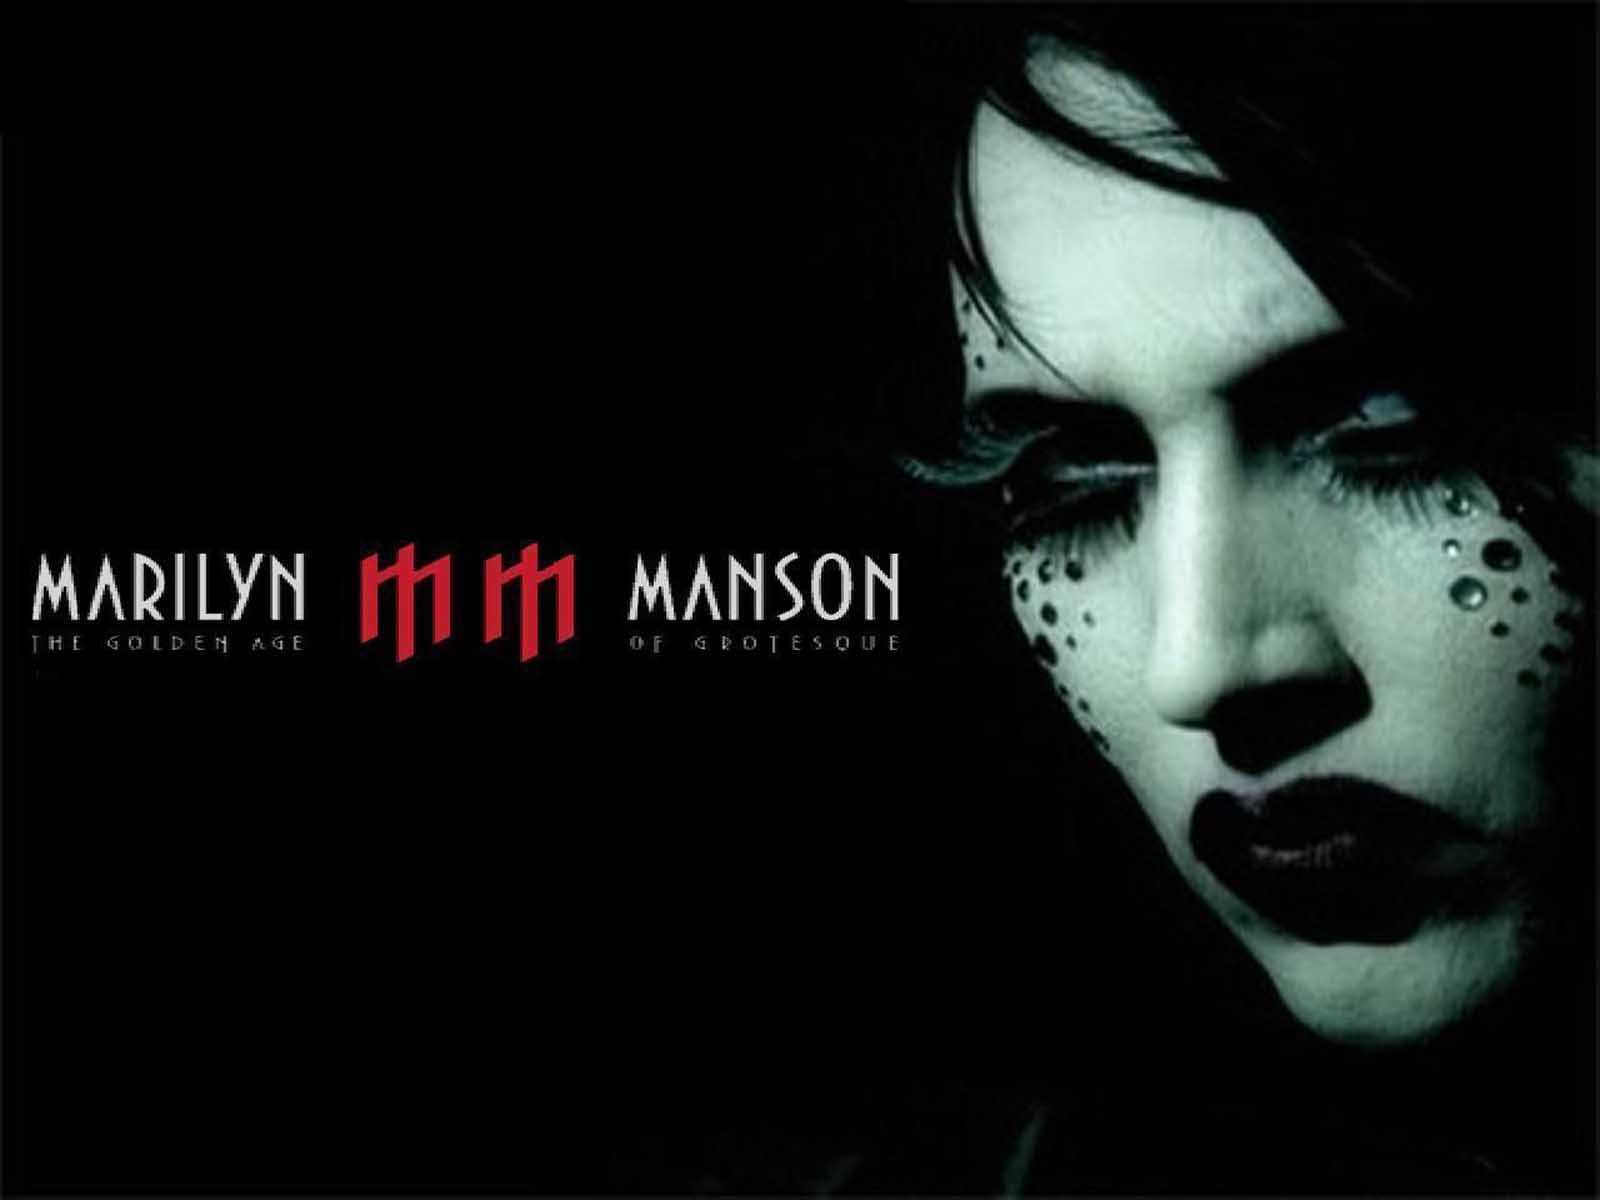 Wallpaper Marilyn Manson The Golden Age Marilyn Manson The